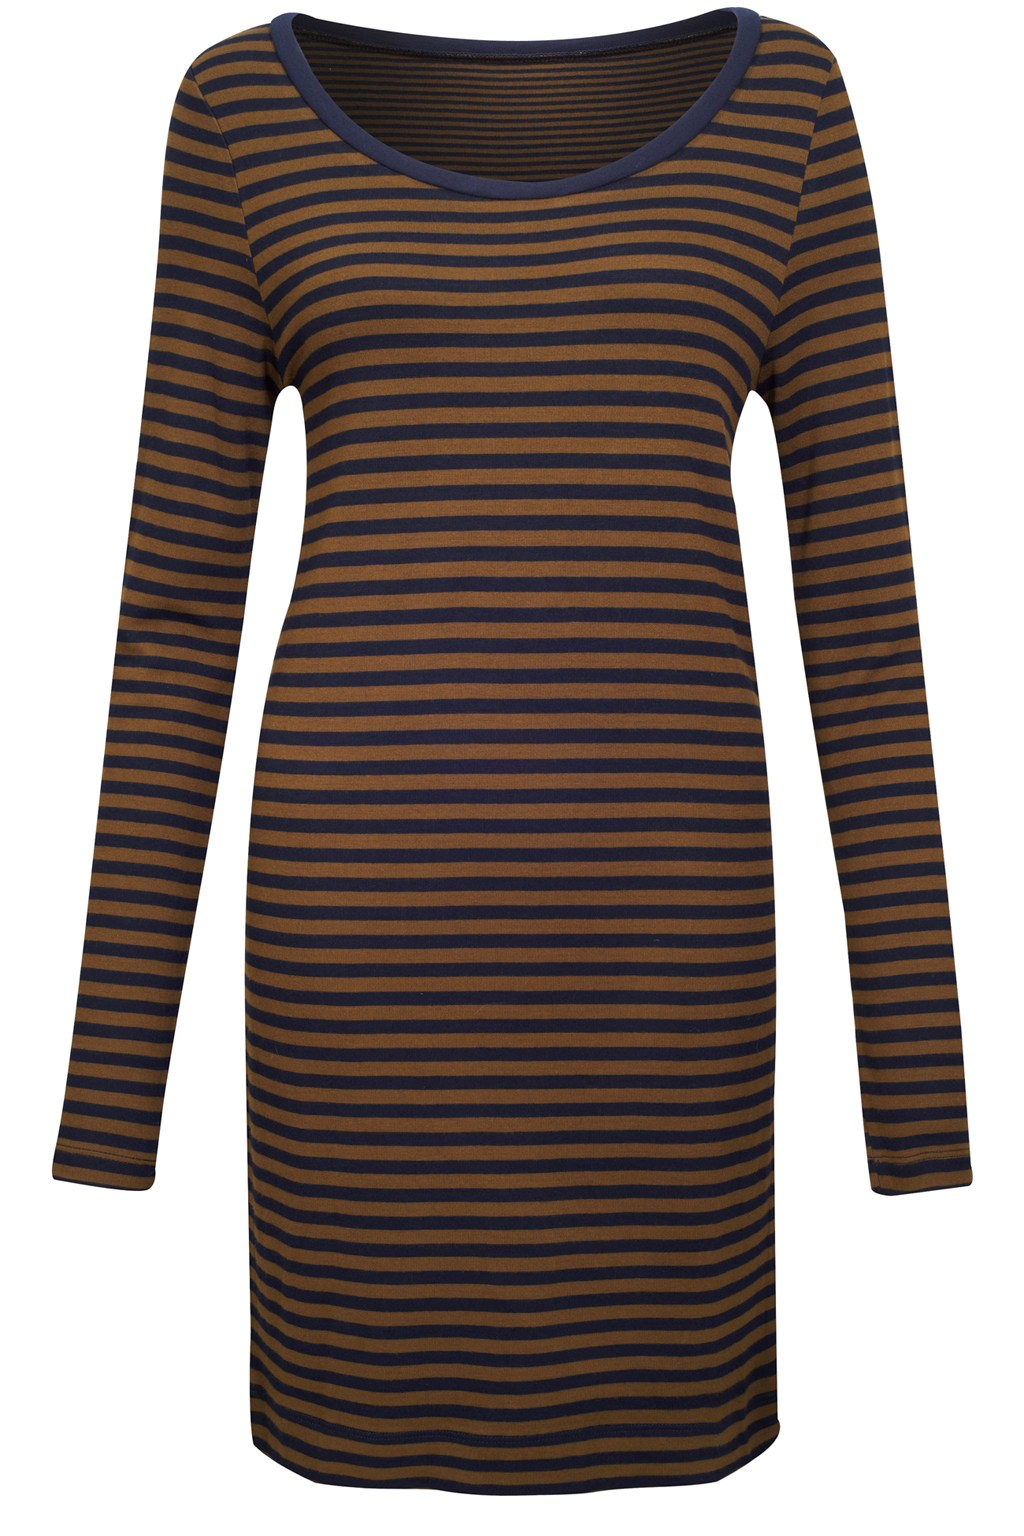 Truro Striped T Shirt Dress Dresses French Connection